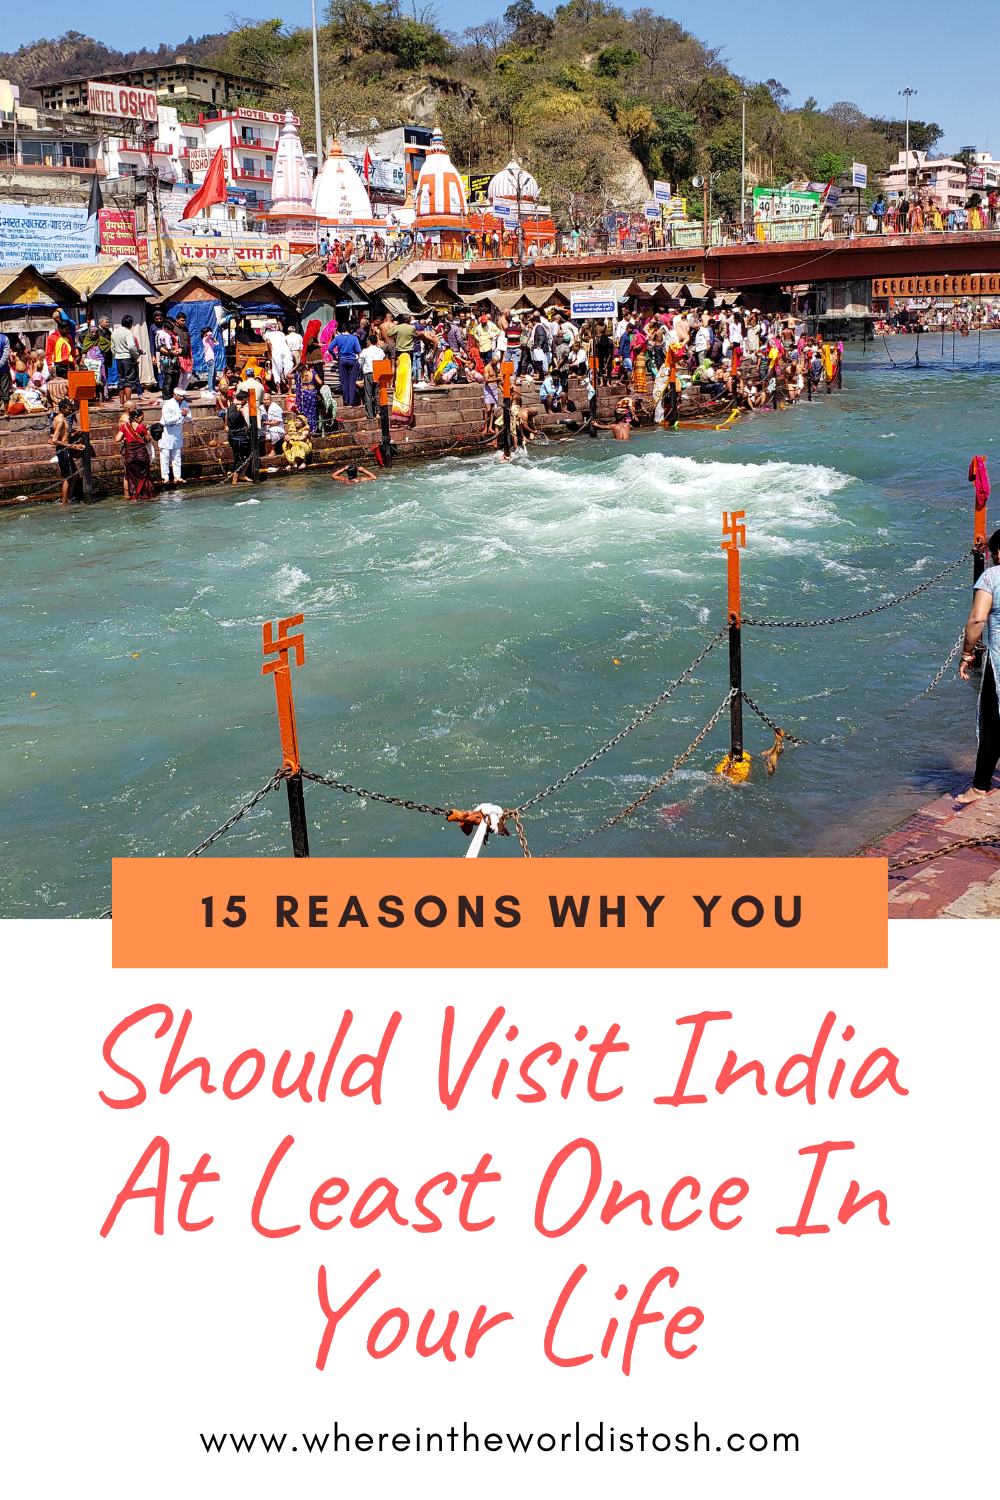 15 Reasons Why You Should Visit India At Least Once In Your Life